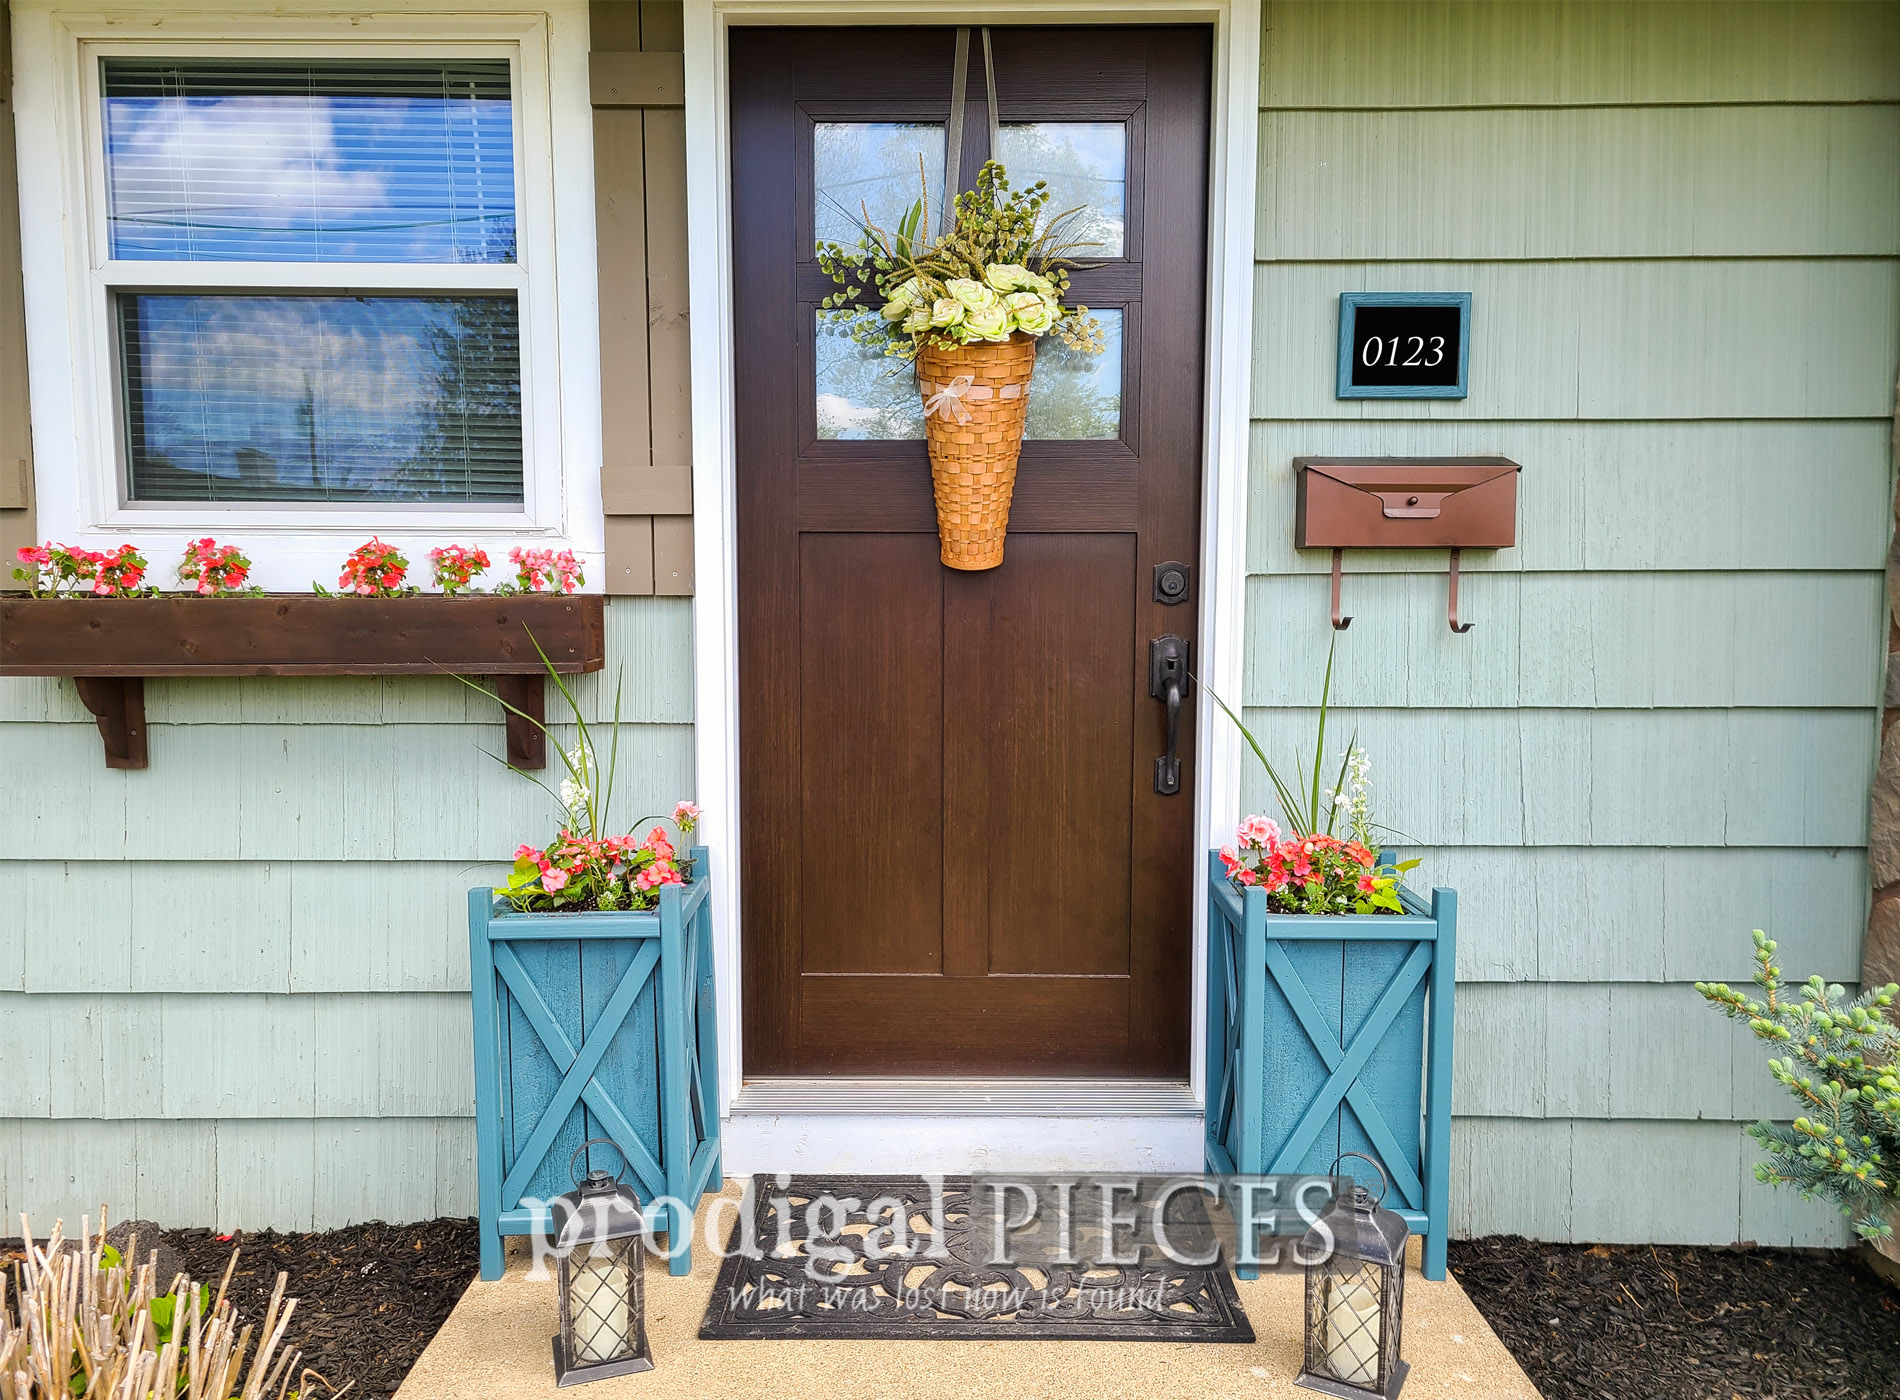 Featured Update Planters the Easy Way for Curb Appeal by Larissa of Prodigal Pieces | prodigalpieces.com #prodigalpieces #diy #home #curbappeal #homedecor #garden